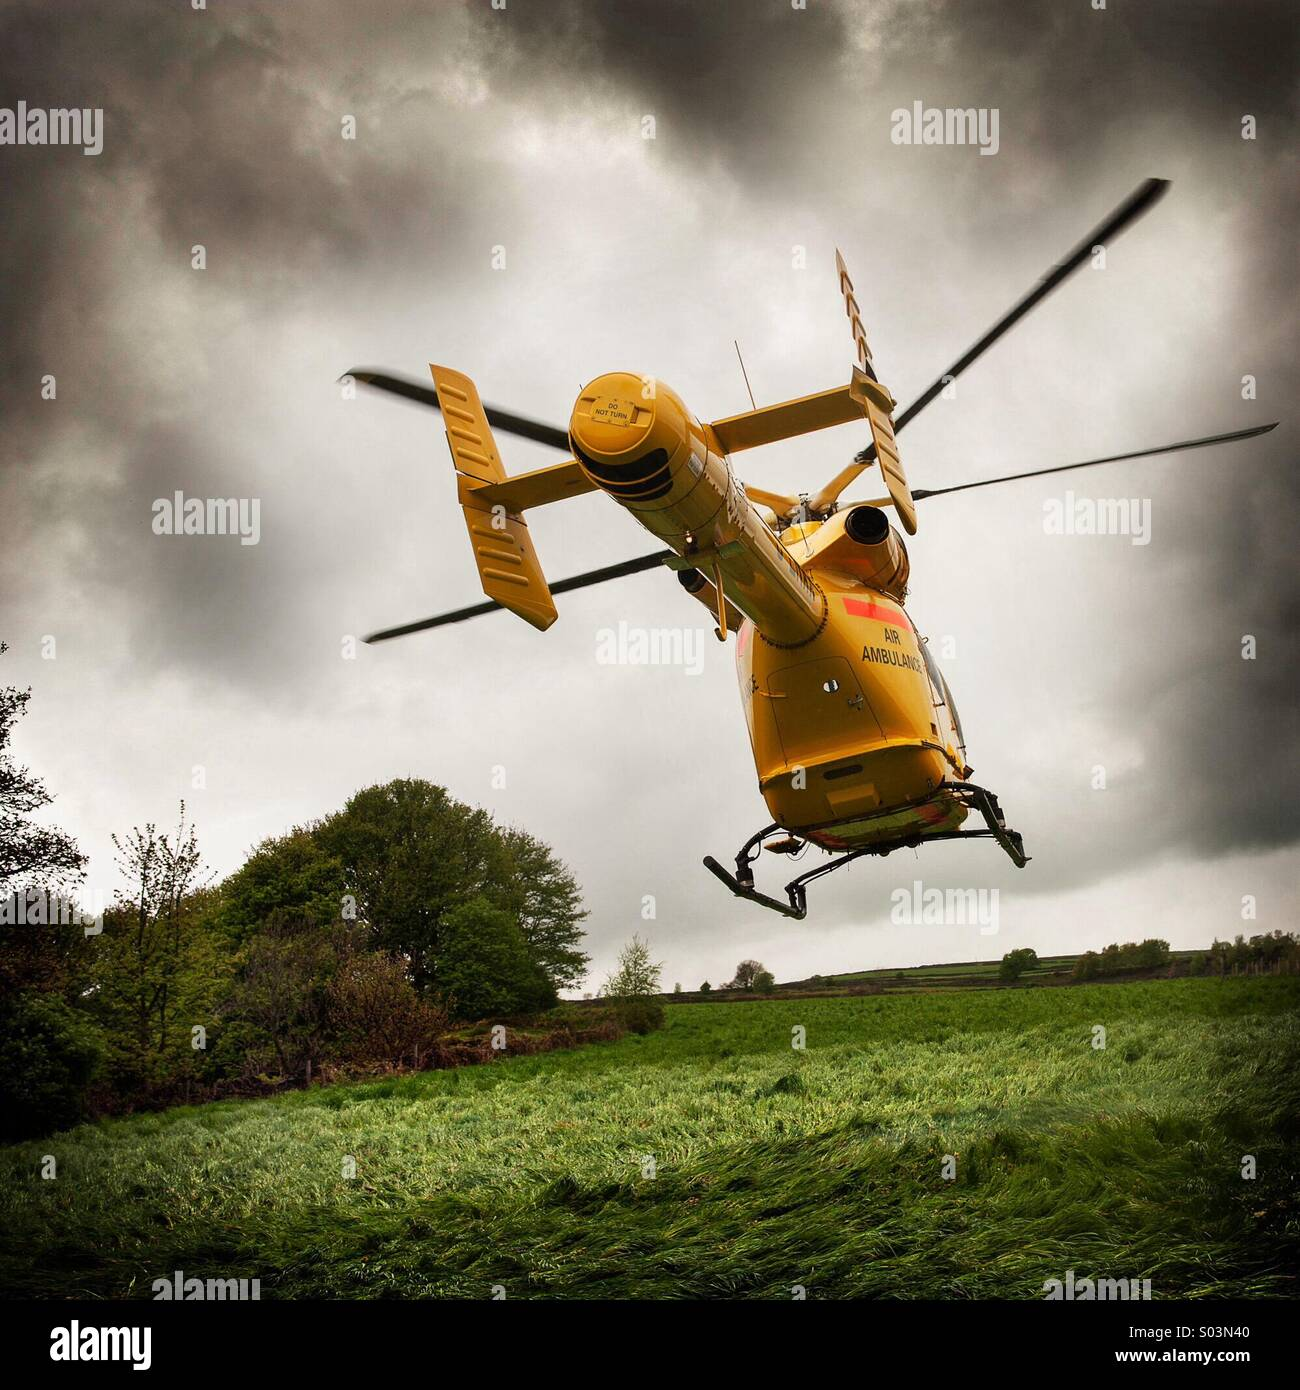 yorkshire-air-ambulance-taking-off-from-